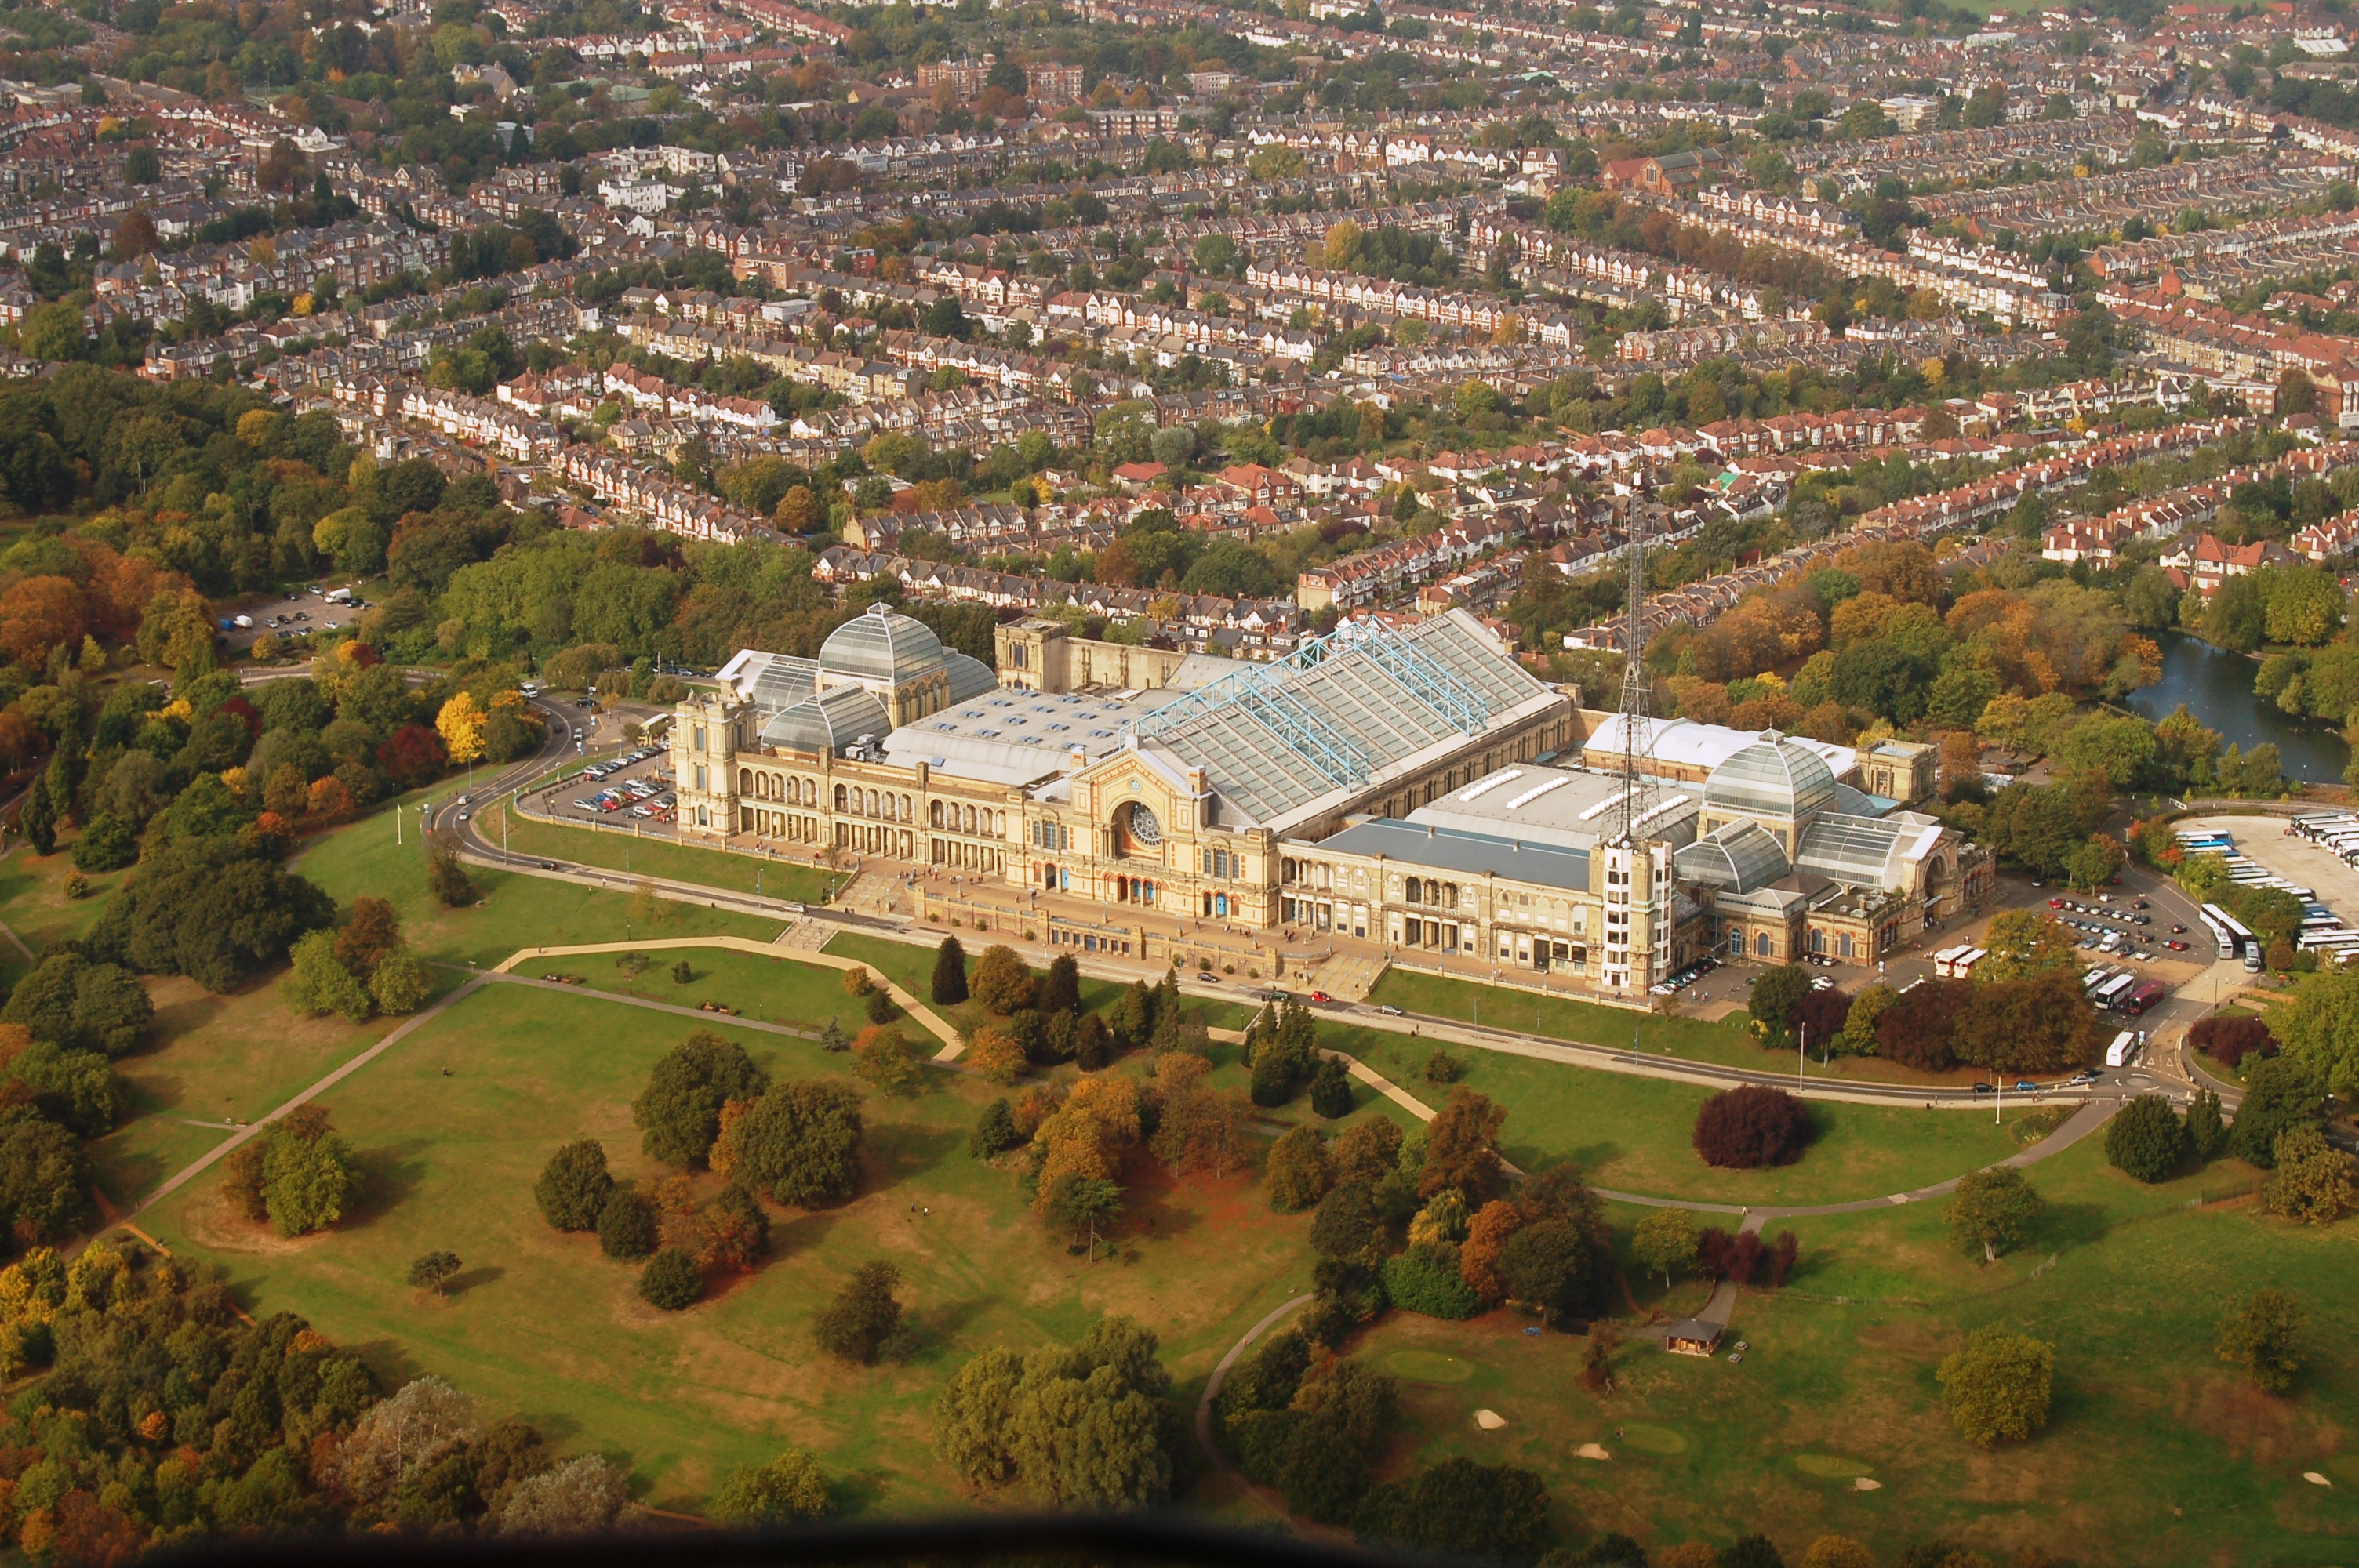 alexandra_palace_from_air_2009